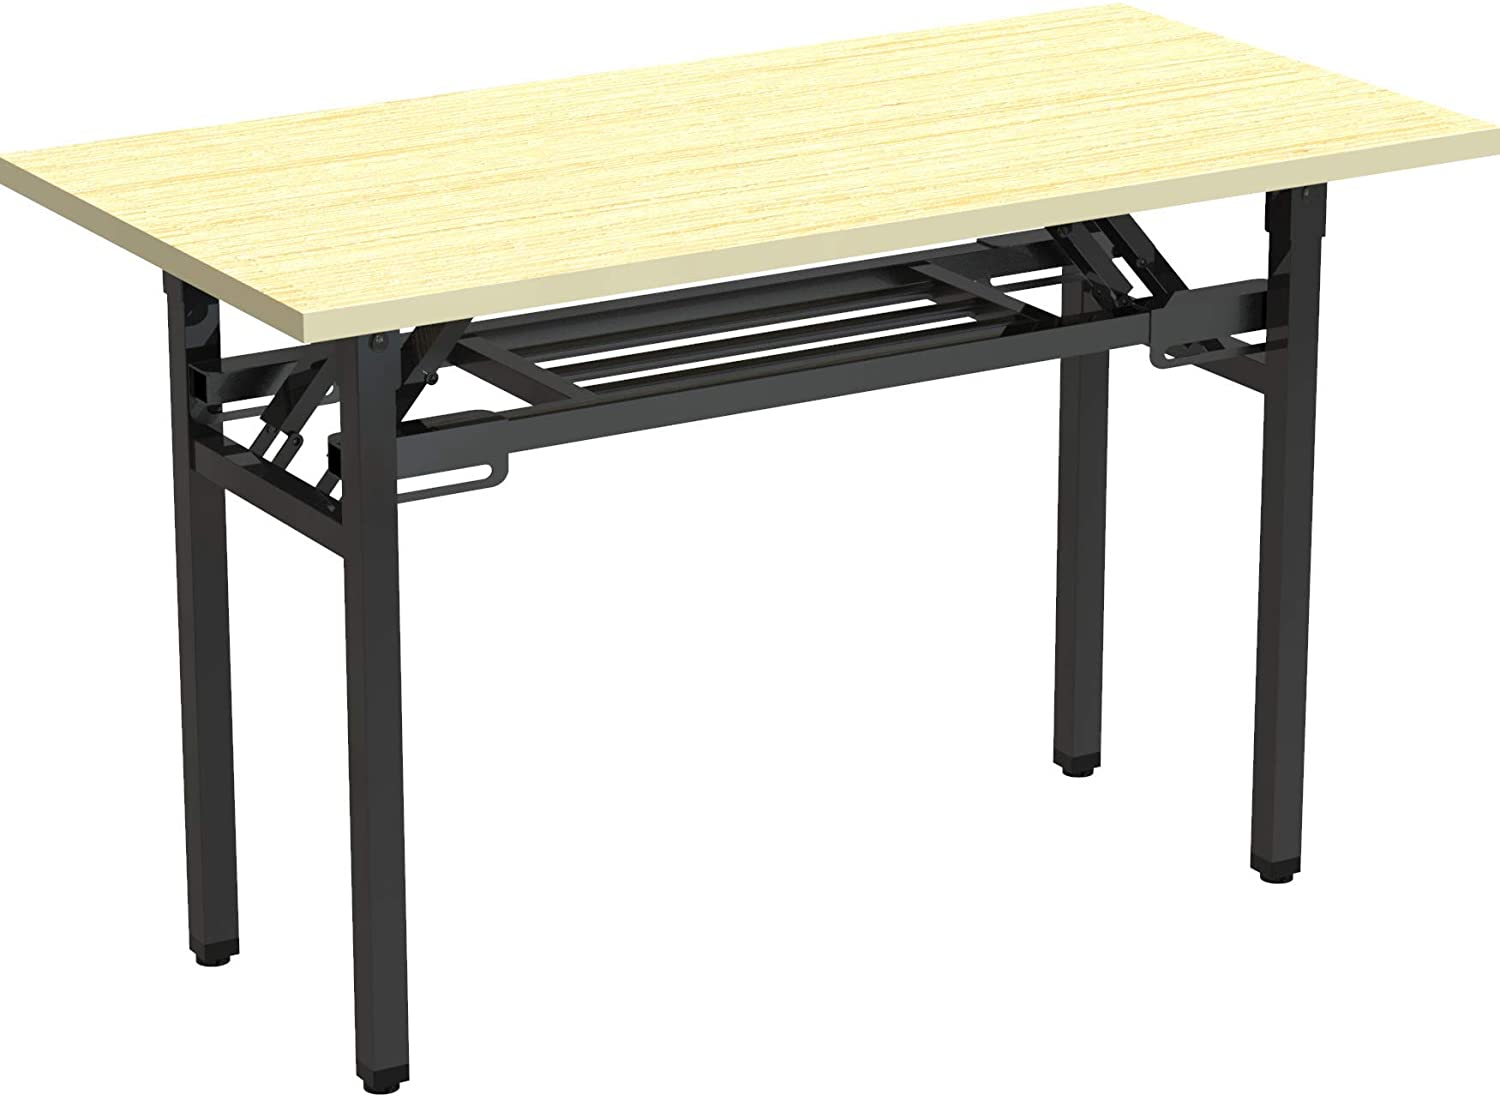 D&LE Portable Folding Computer Desk,Simple Foldable Study Writing Desk,Space Saving Small Laptop Table for Home School Without Assembly